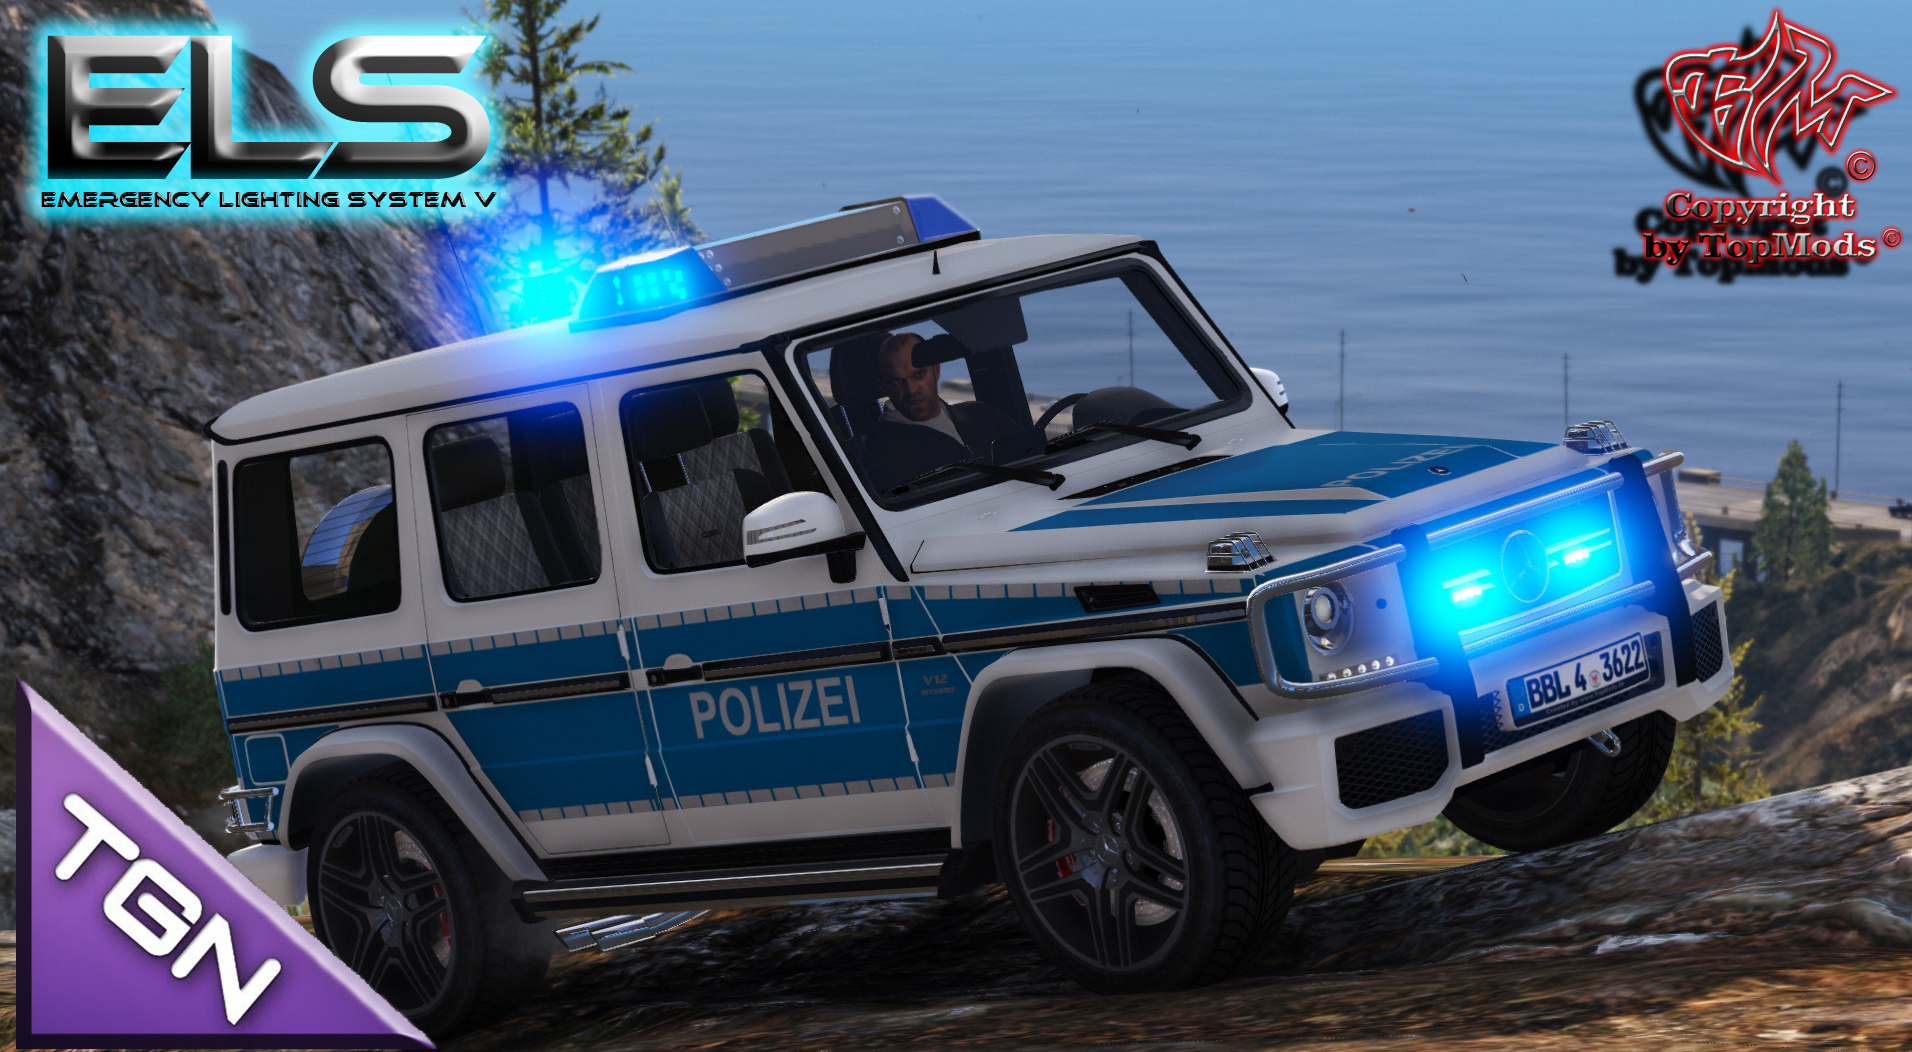 Mercedes Benz G Klasse Polizei Brandenburg [ELS] GTA5 Mods